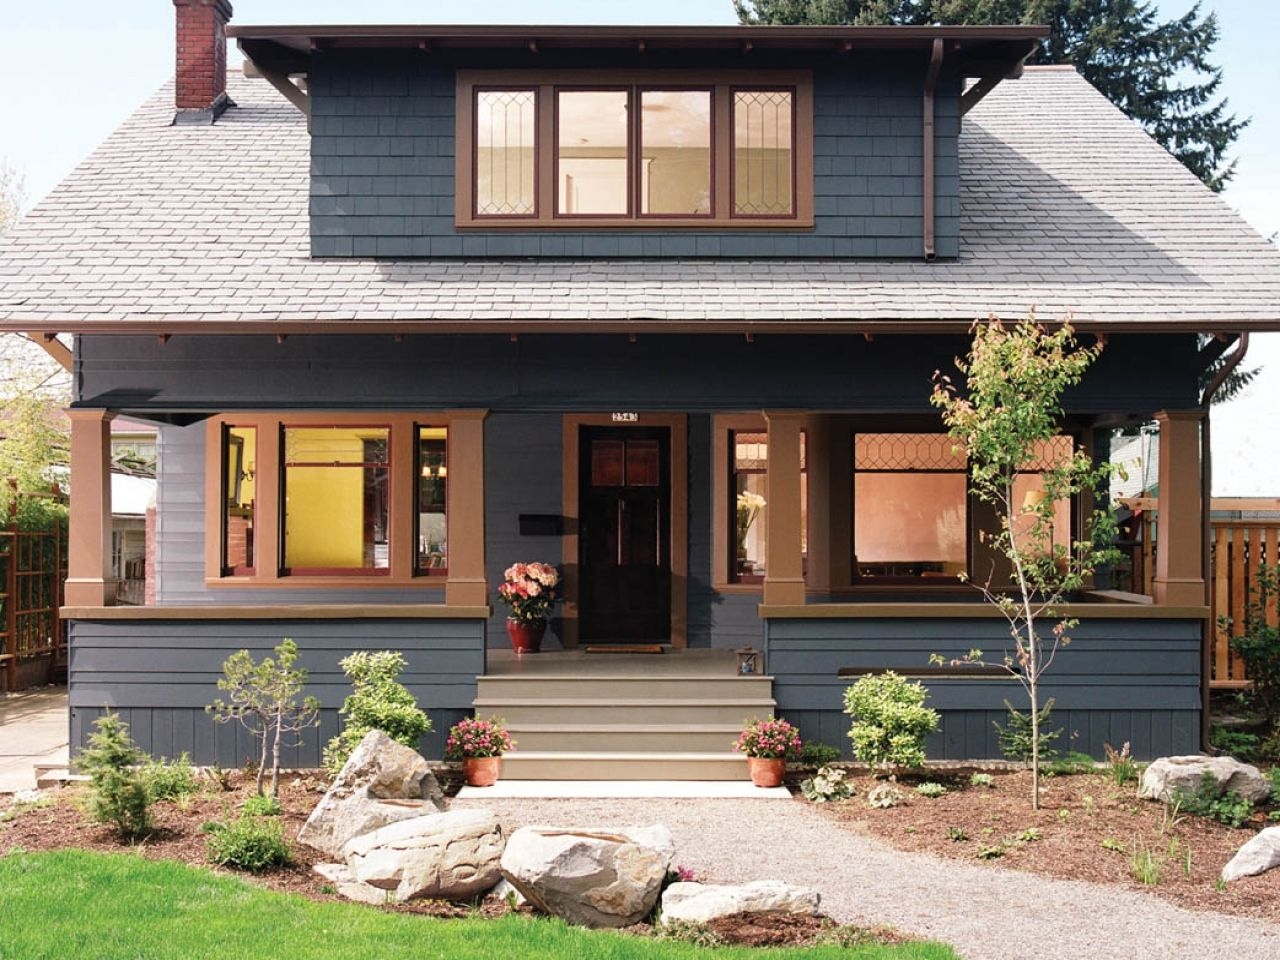 50 house colors to convince you to paint yours for Craftsman exterior color schemes